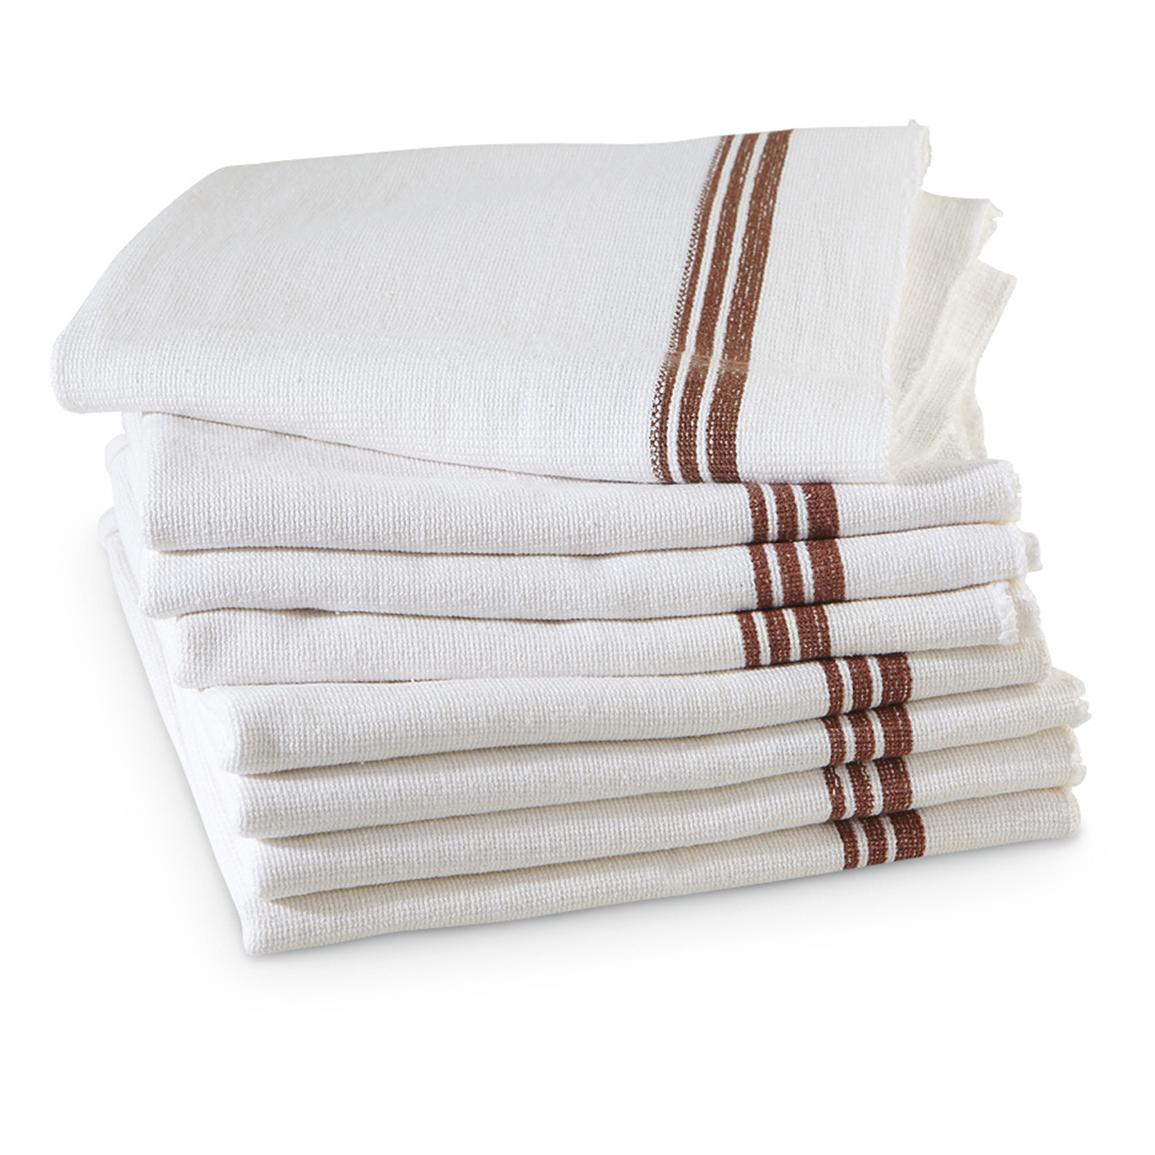 8 New Hungarian Military Towels, White with Brown Stripes